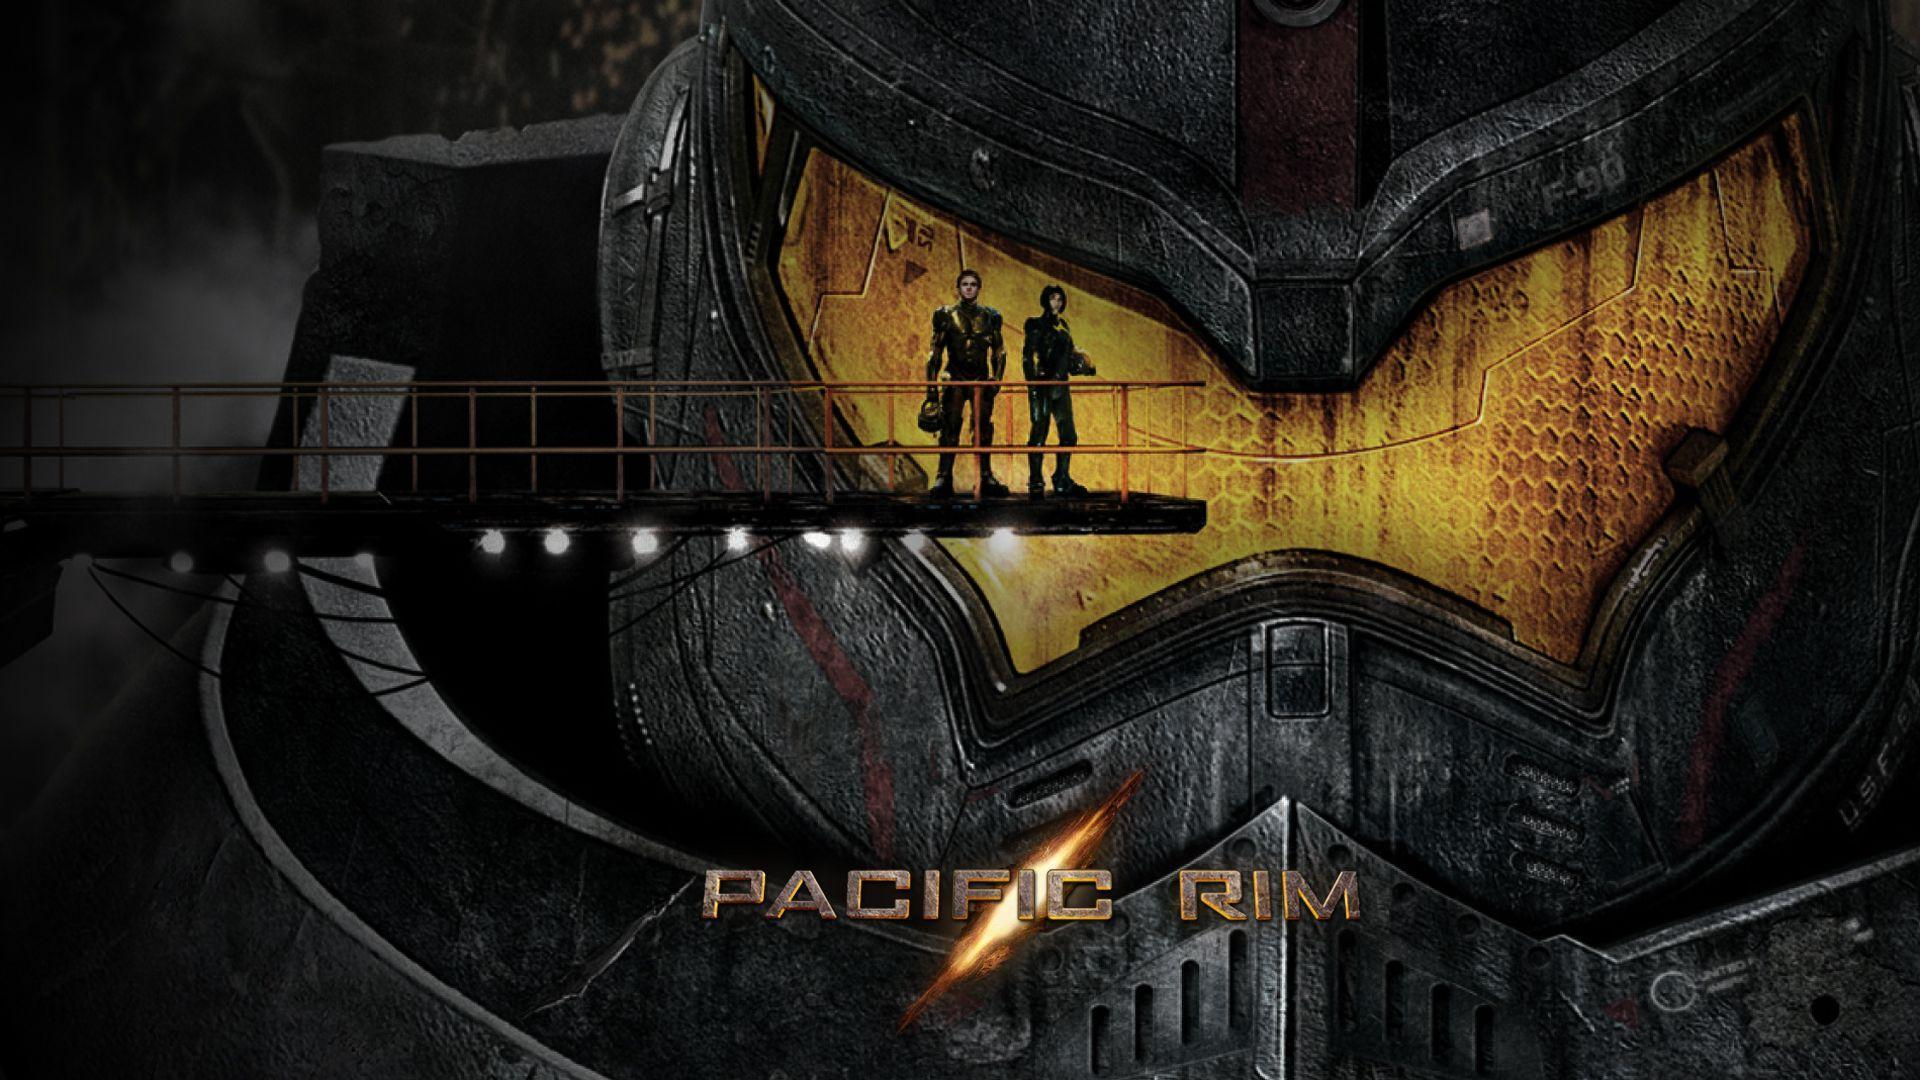 Hd Charlie Hunnam Wallpapers: Pacific Rim Wallpapers